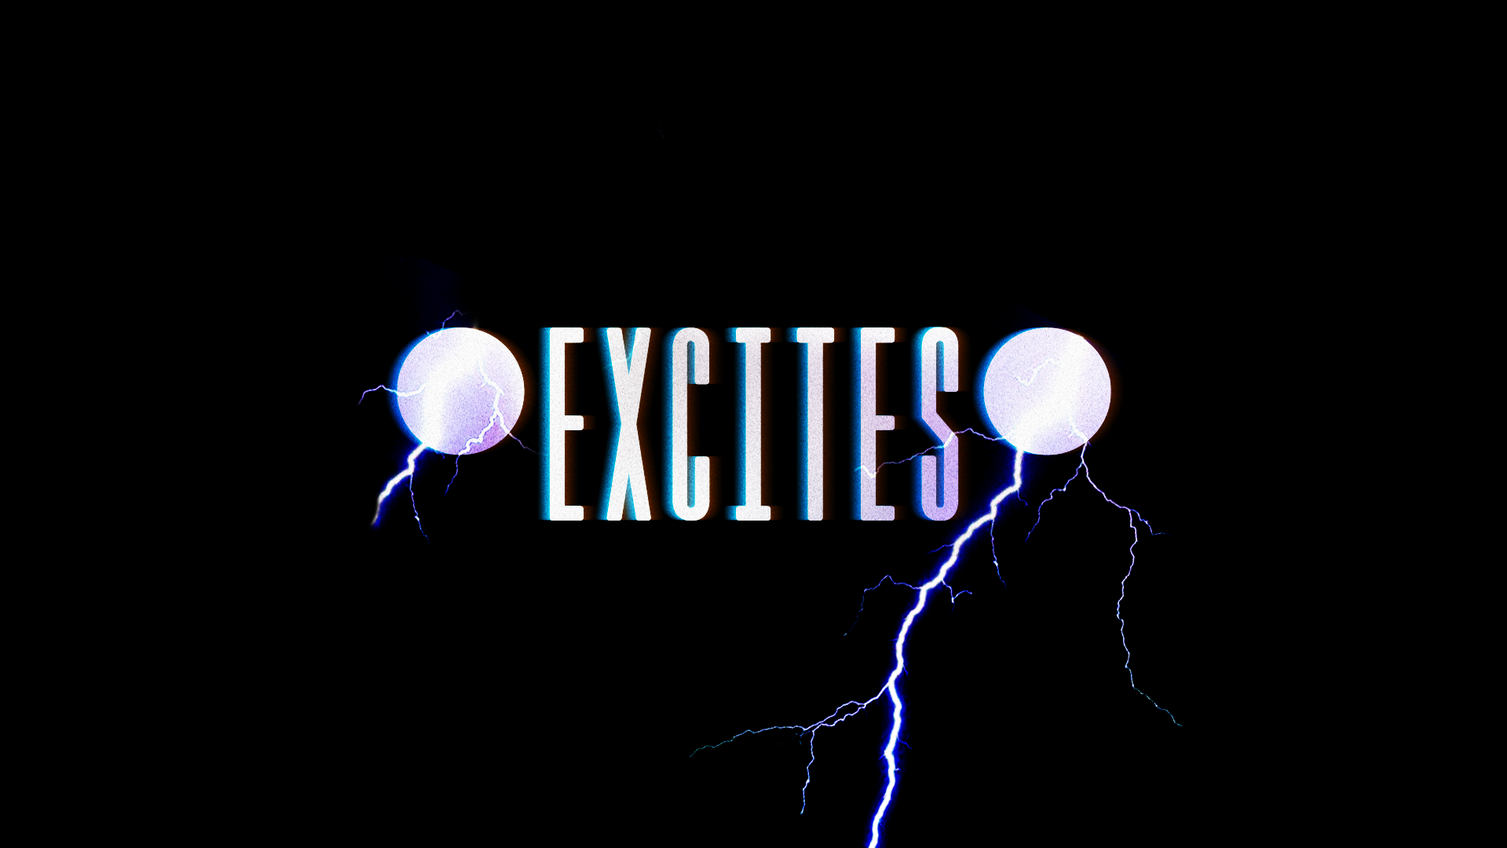 04_Excites_02.png